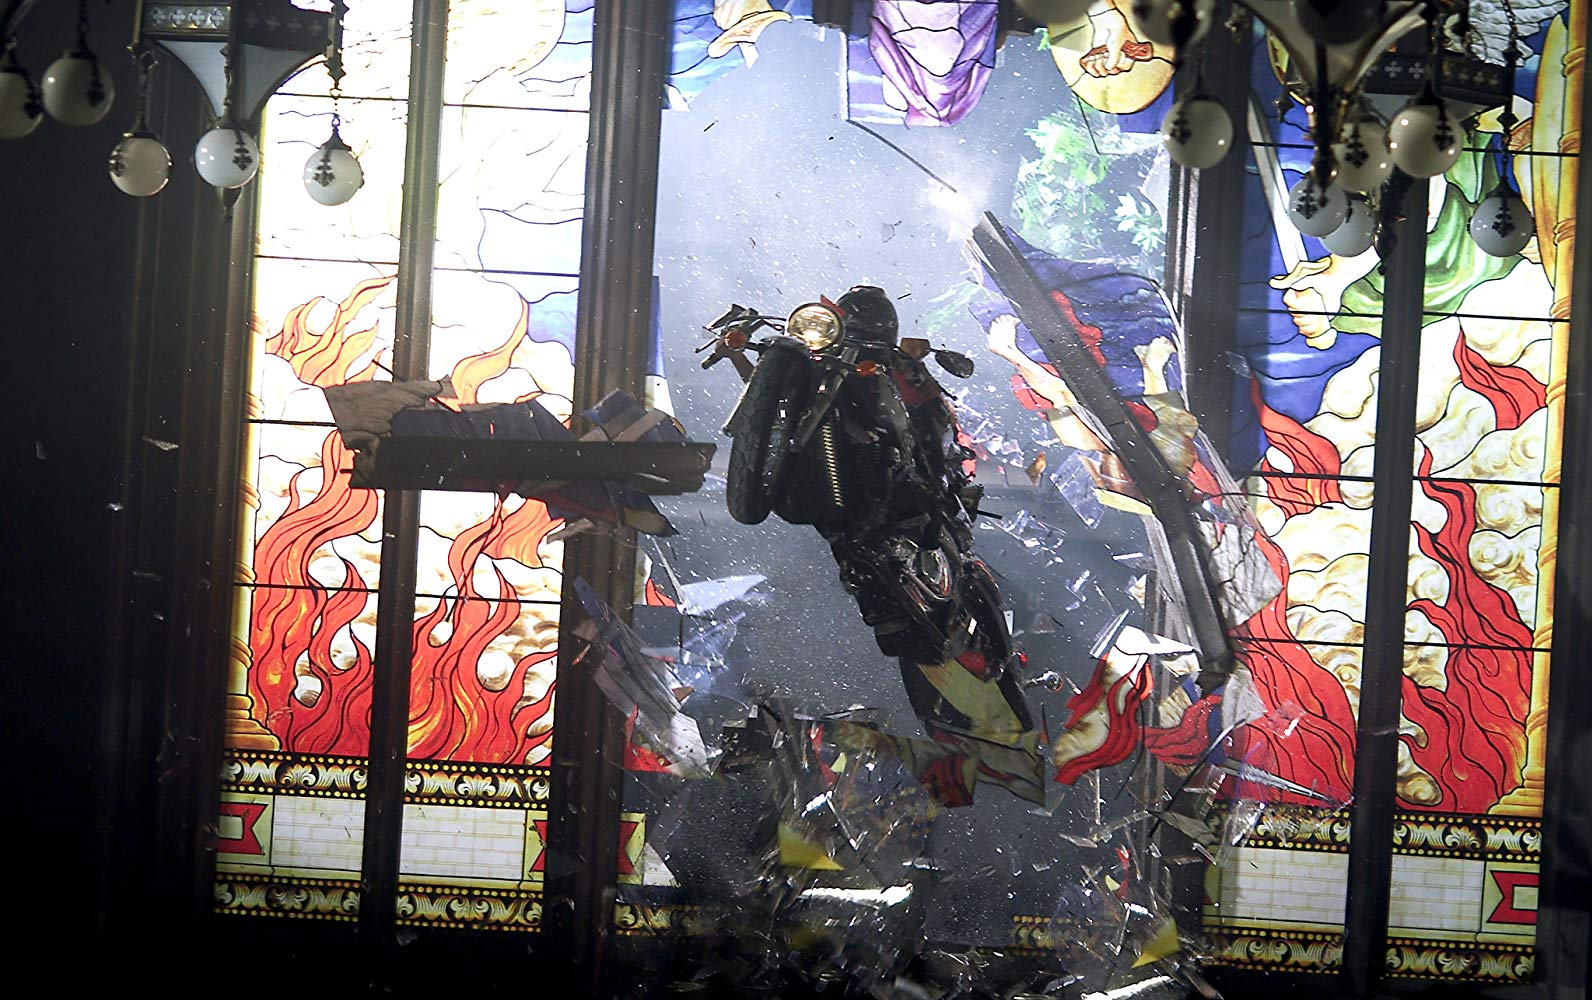 Alice (Milla Jovovich) rides a motorcycle through a stained glass window in Resident Evil: Apocalypse (2004)